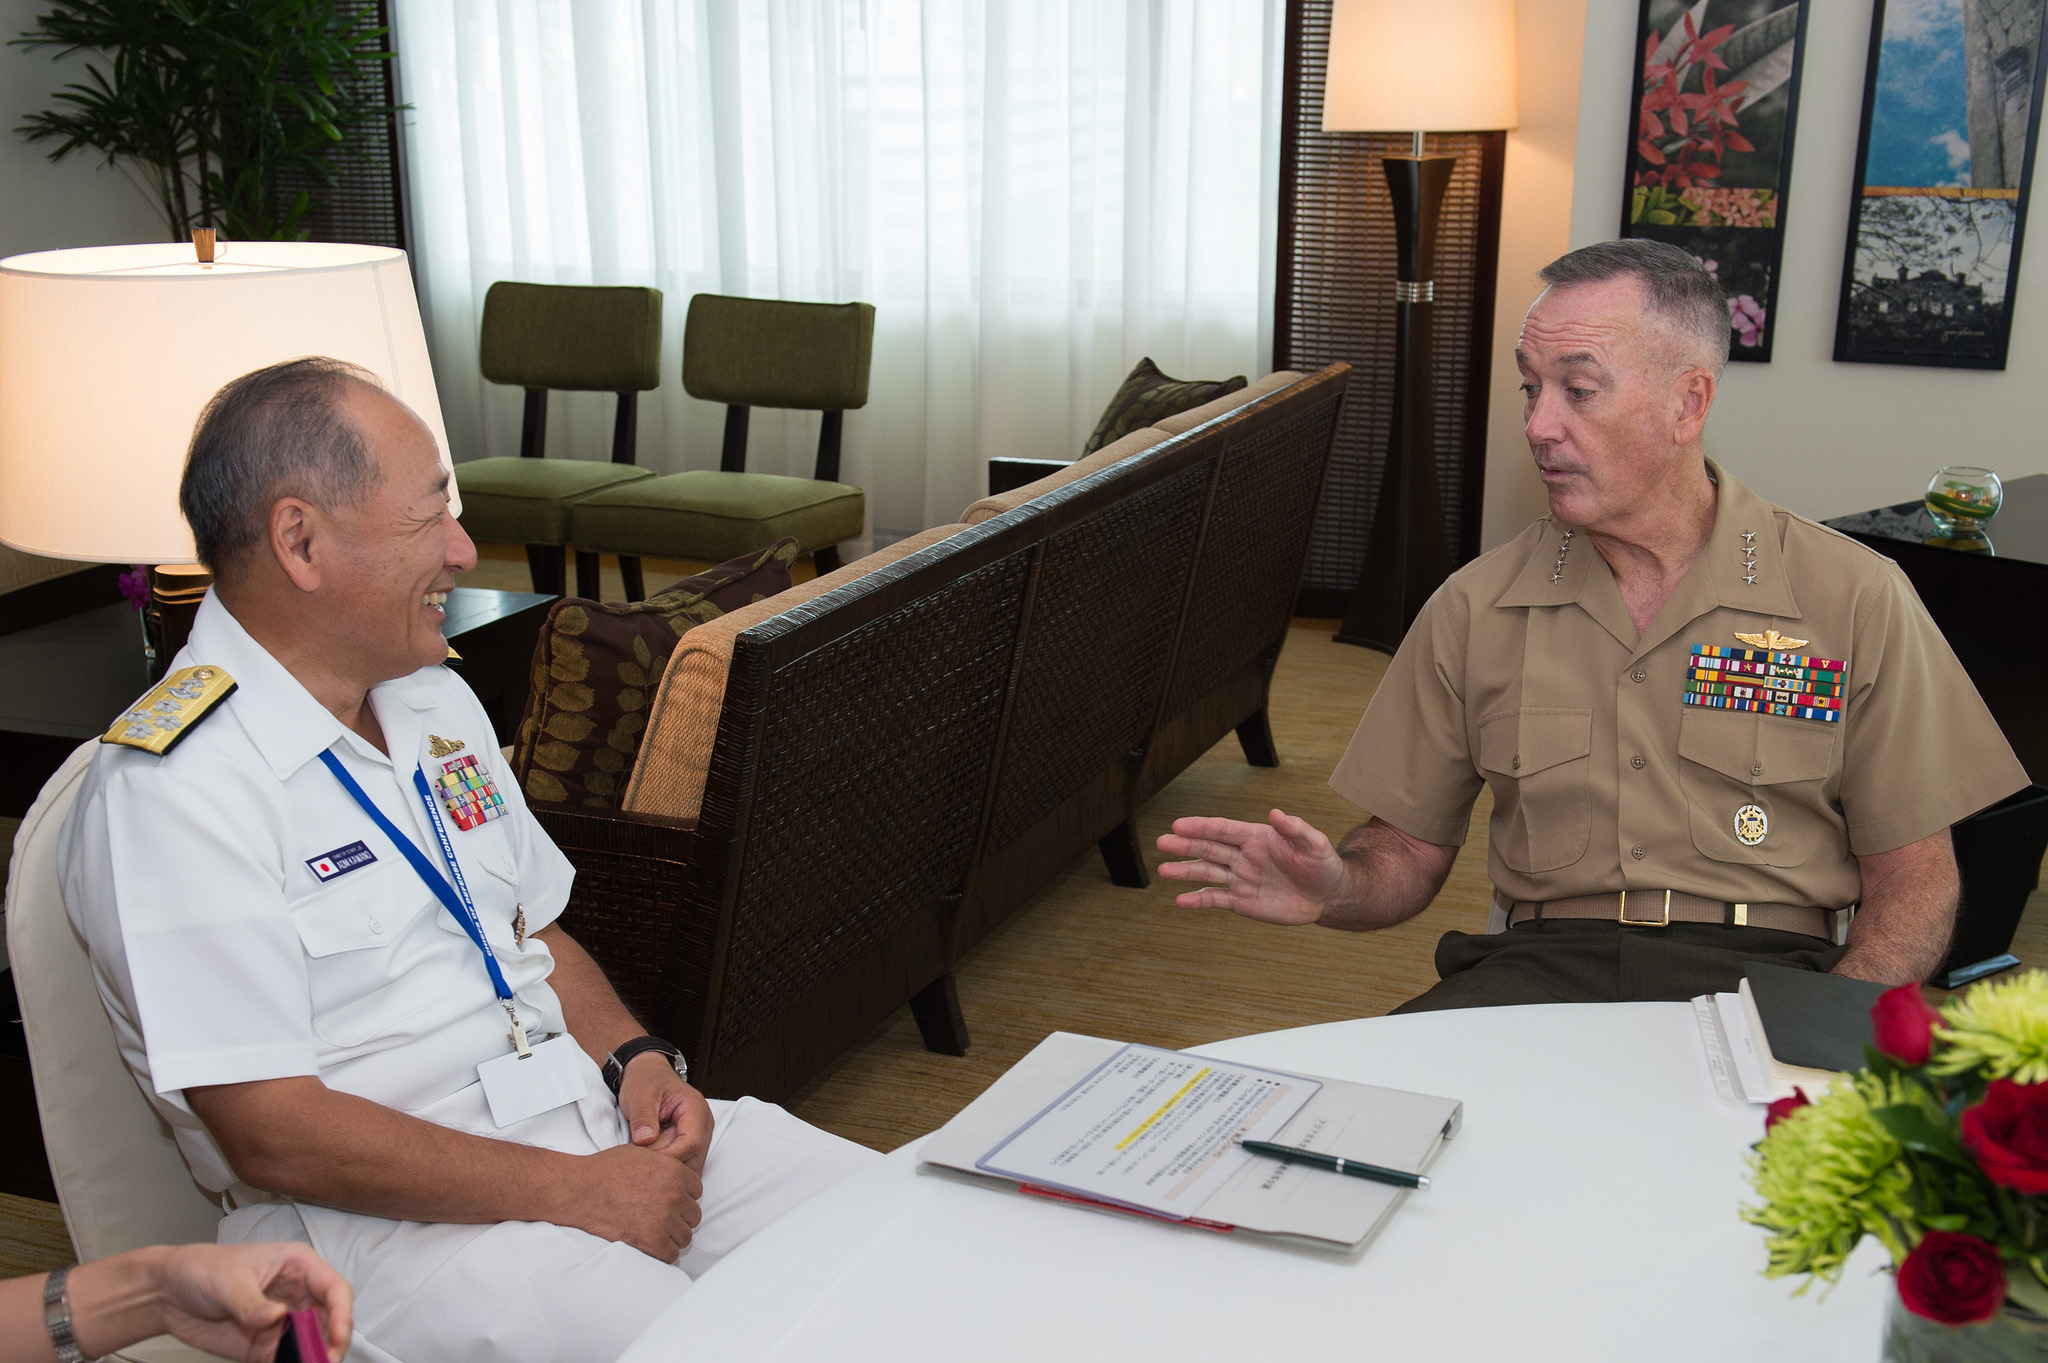 Marine Corps Gen. Joe Dunford, chairman of the Joint Chiefs of Staff, meets with Adm. Katsutoshi Kawano, chief of staff of Japan's Joint Staff